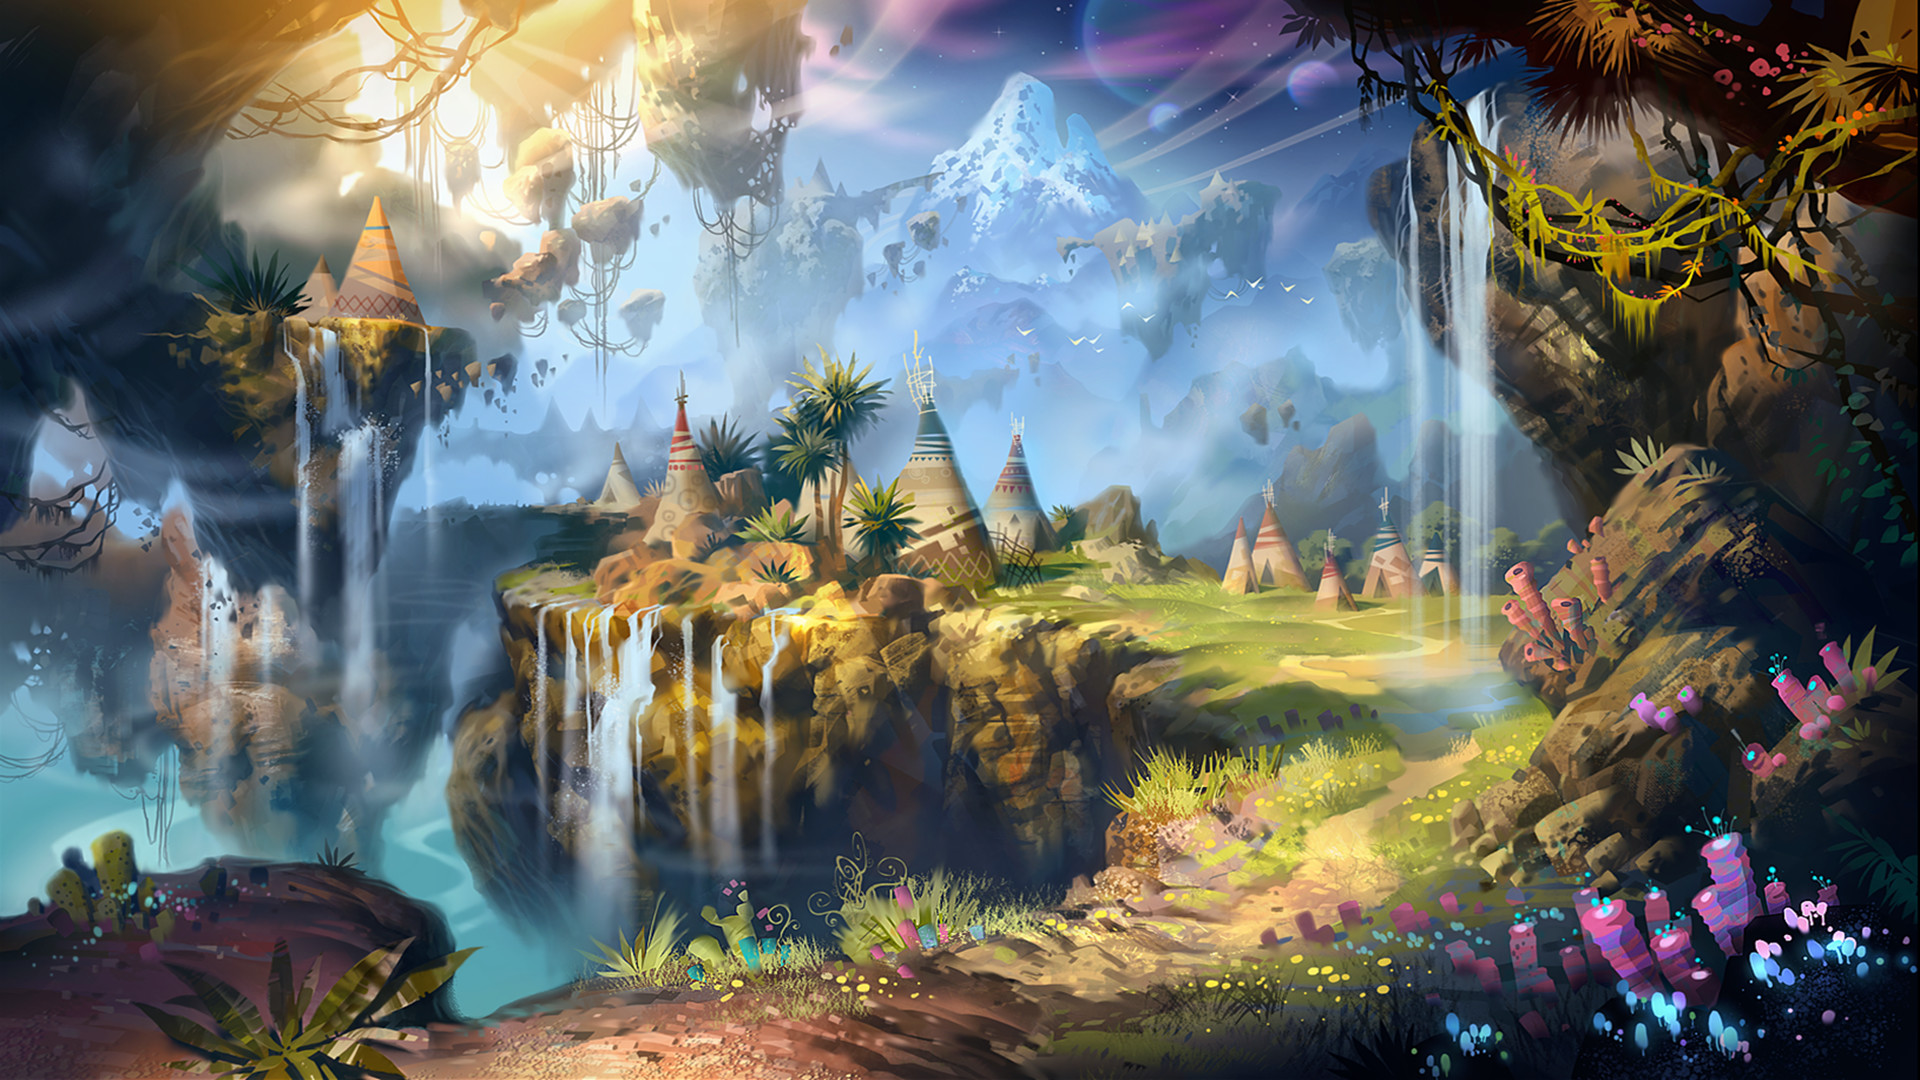 1920x1080 Super HD Nice Images of Fantasy Landscape ...